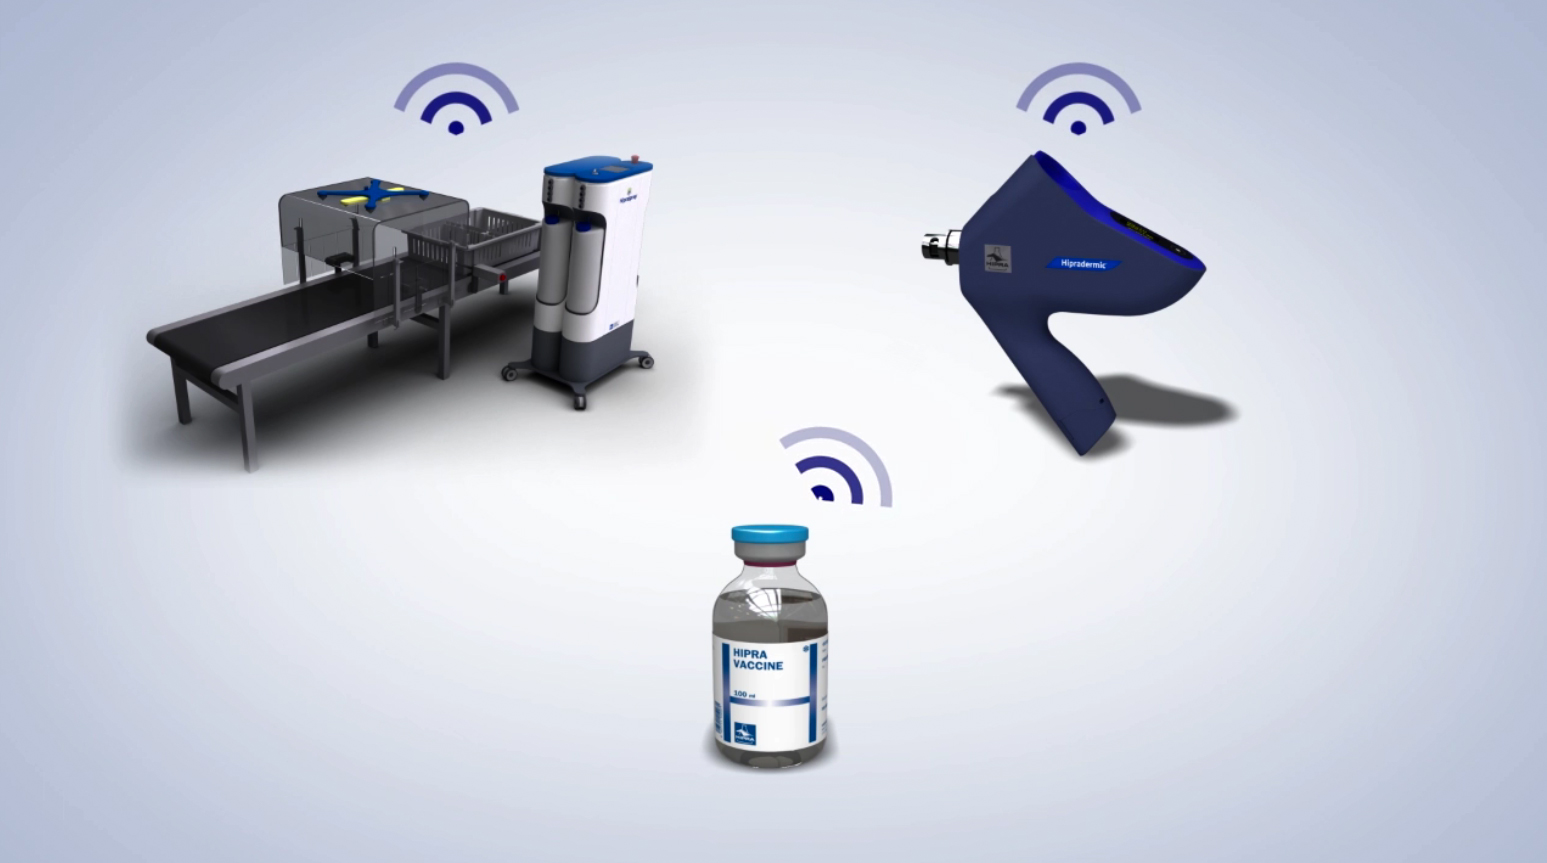 smart vaccination tools explanation for poultry farm industry